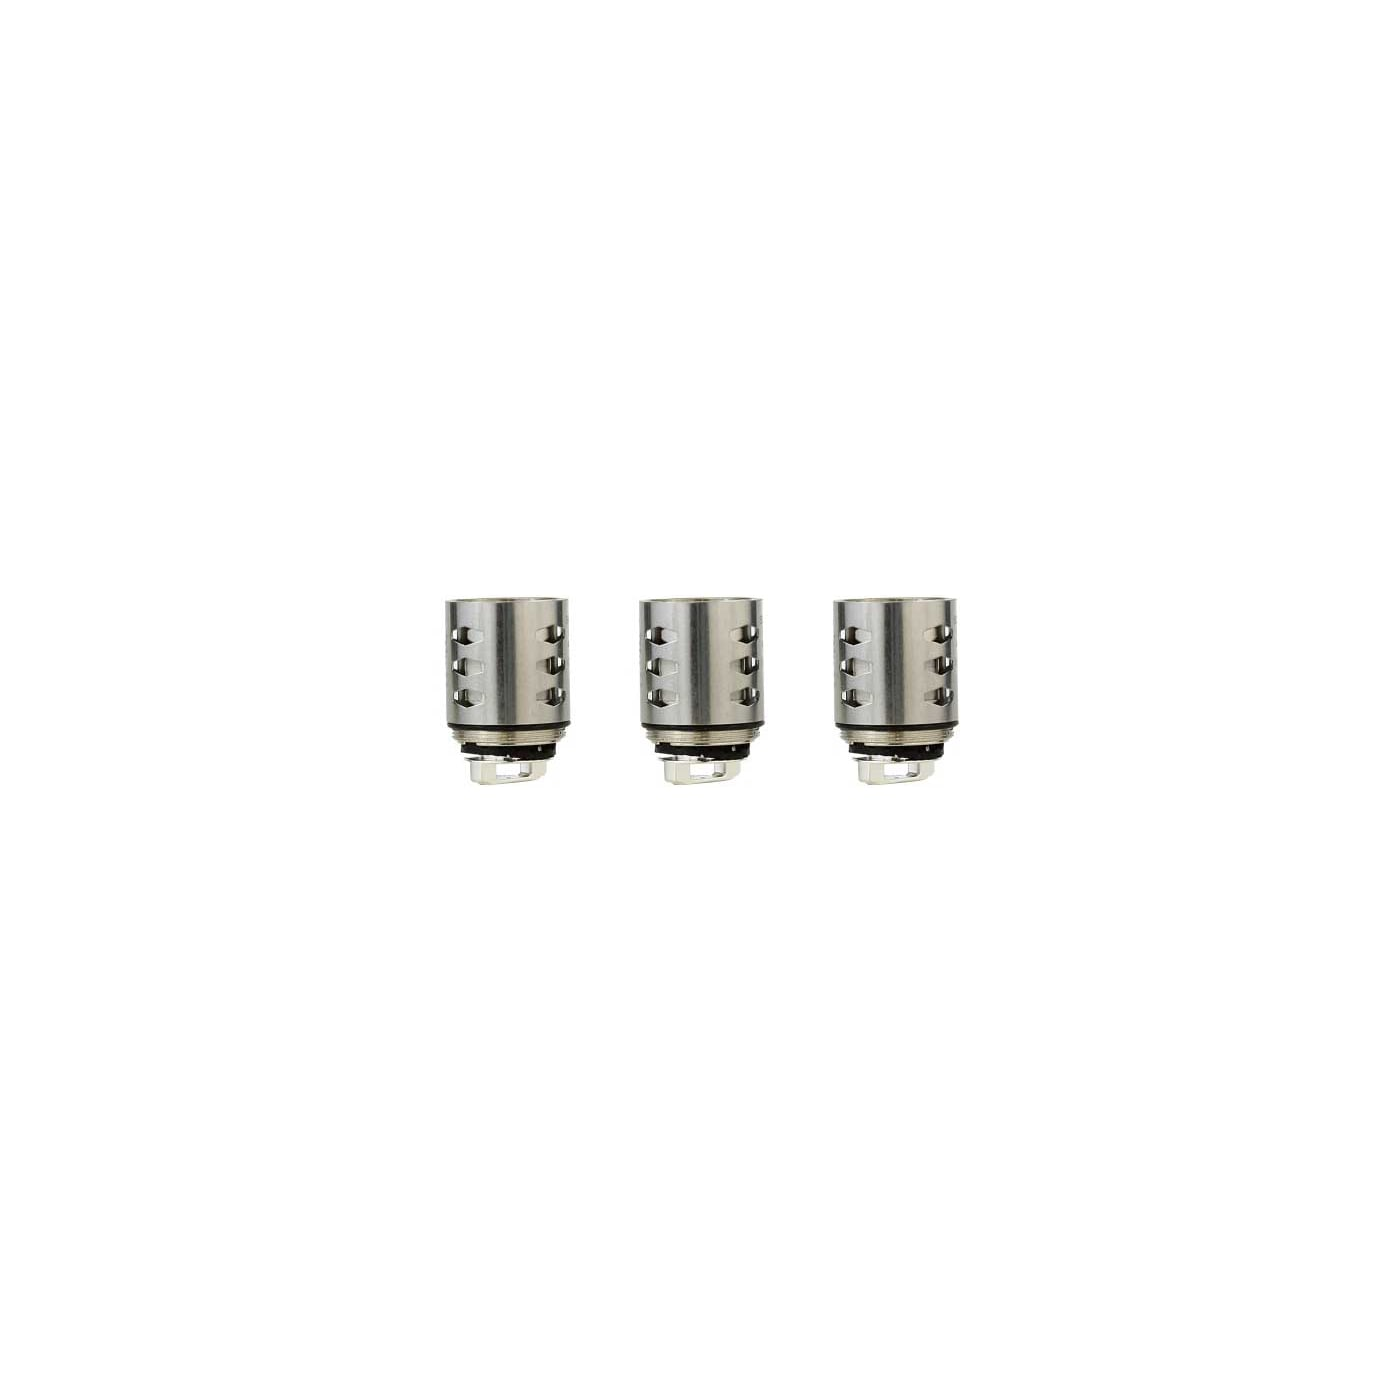 Smok TFV12 Prince X2 Clapton Replacement Coil - 3 Pack